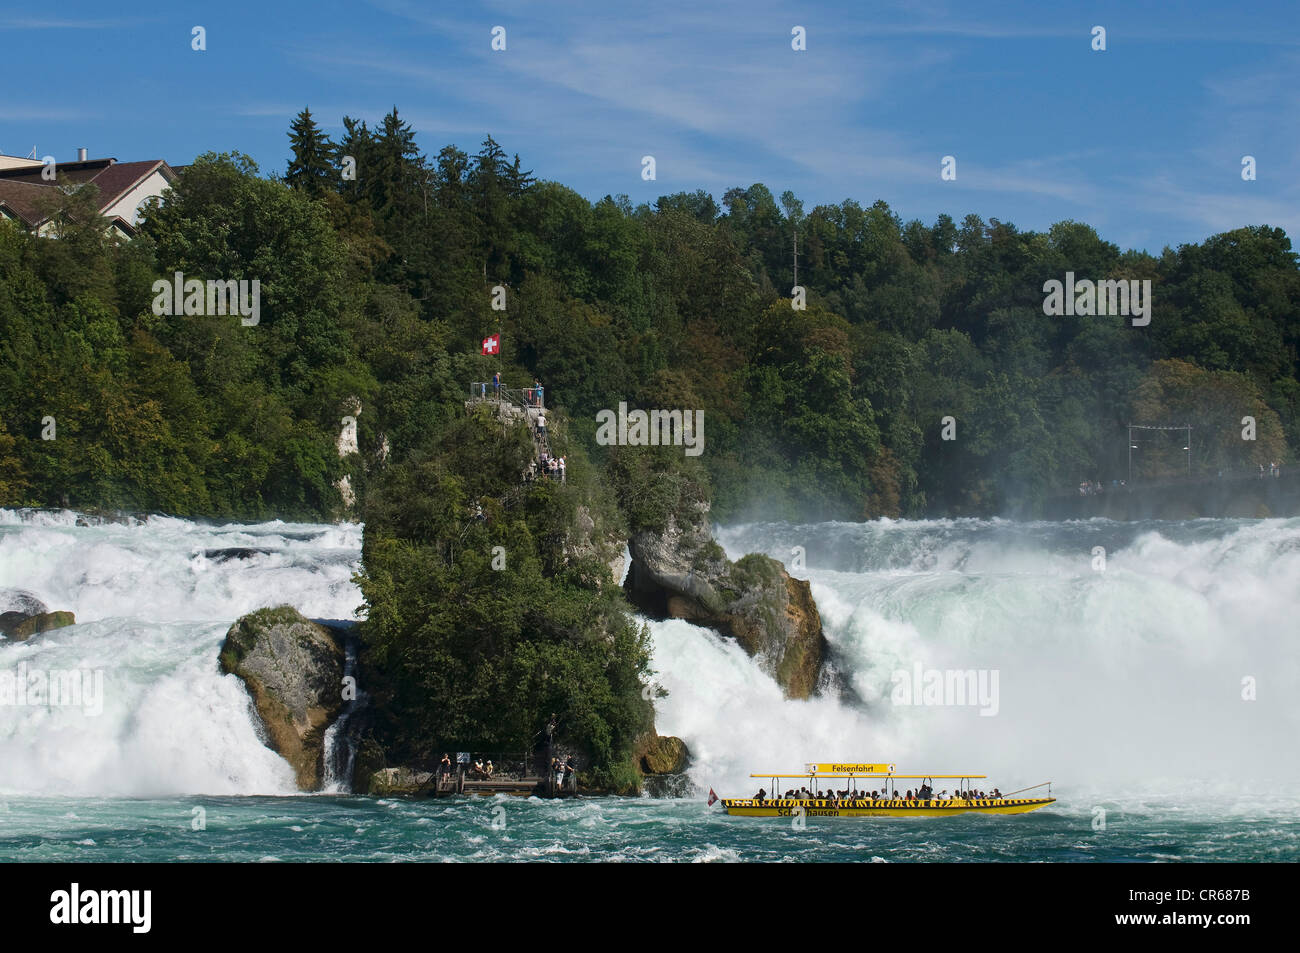 Rock amidst the roaring waters of the Rhine Falls of Schaffhausen, tourist excursion boat at front, Switzerland, - Stock Image